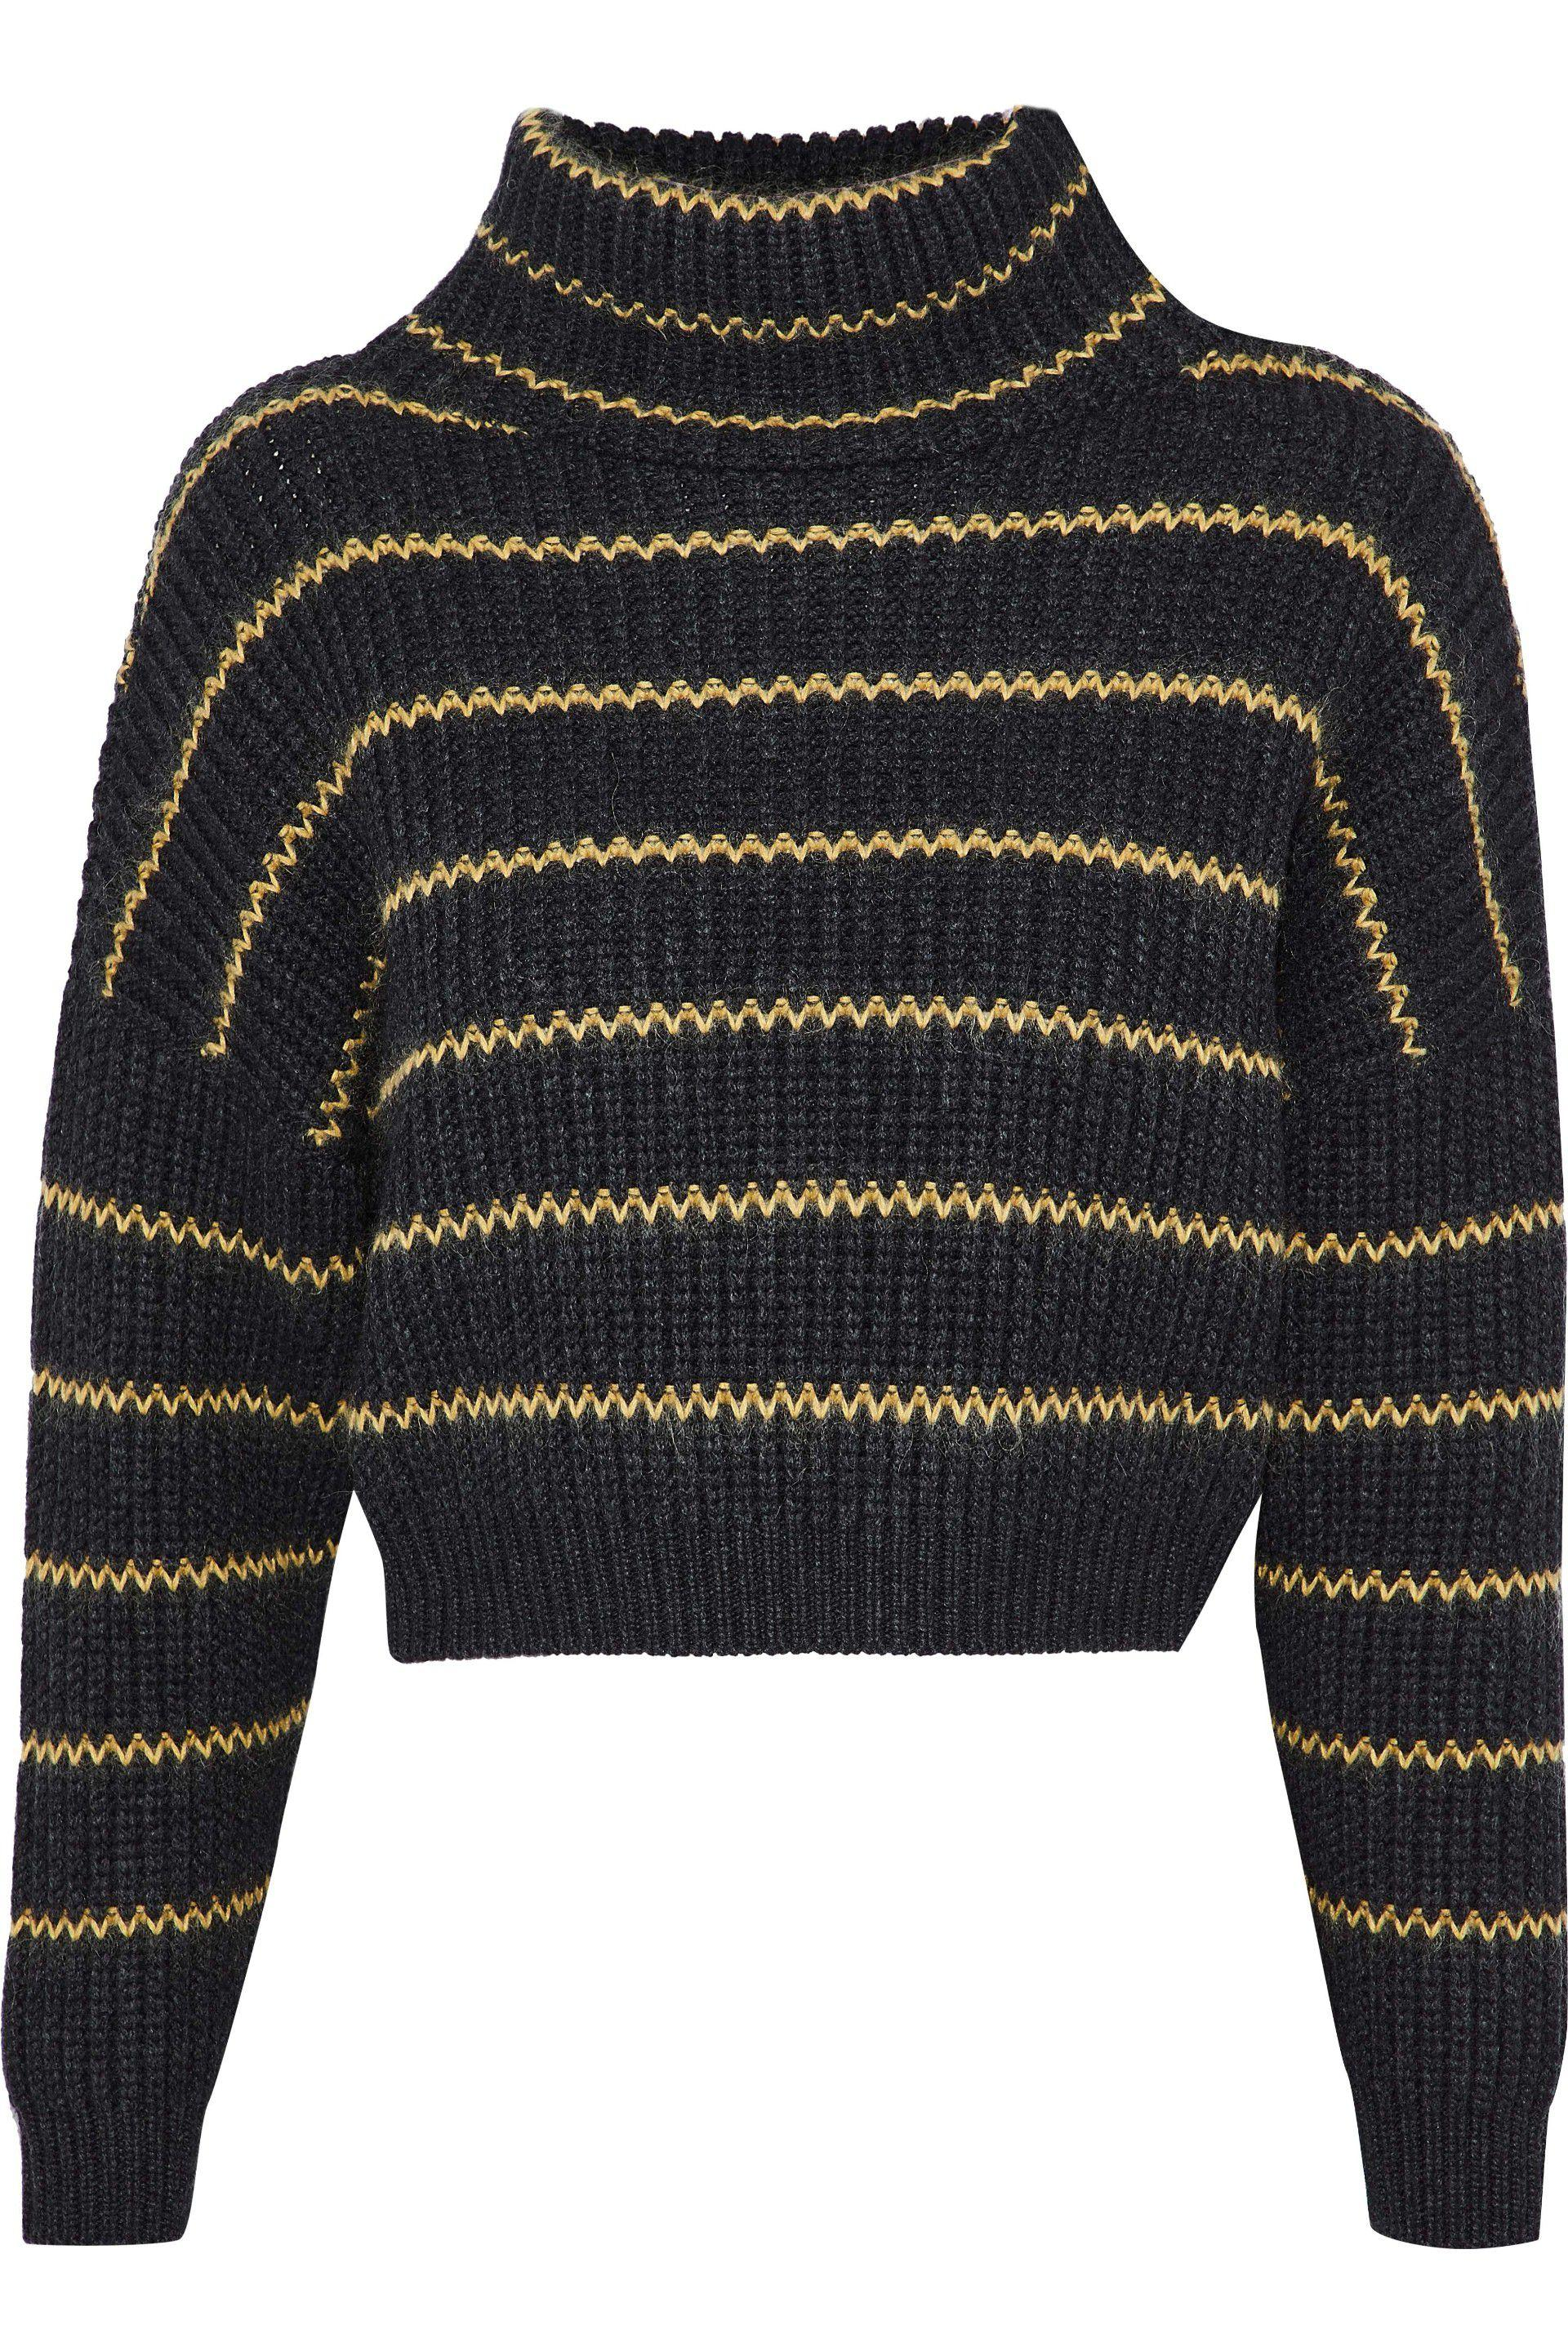 7ae575f97656 brunello-cucinelli-Black-Woman-Bead-embellished-Striped-Cashmere-Turtleneck- Sweater-Black.jpeg